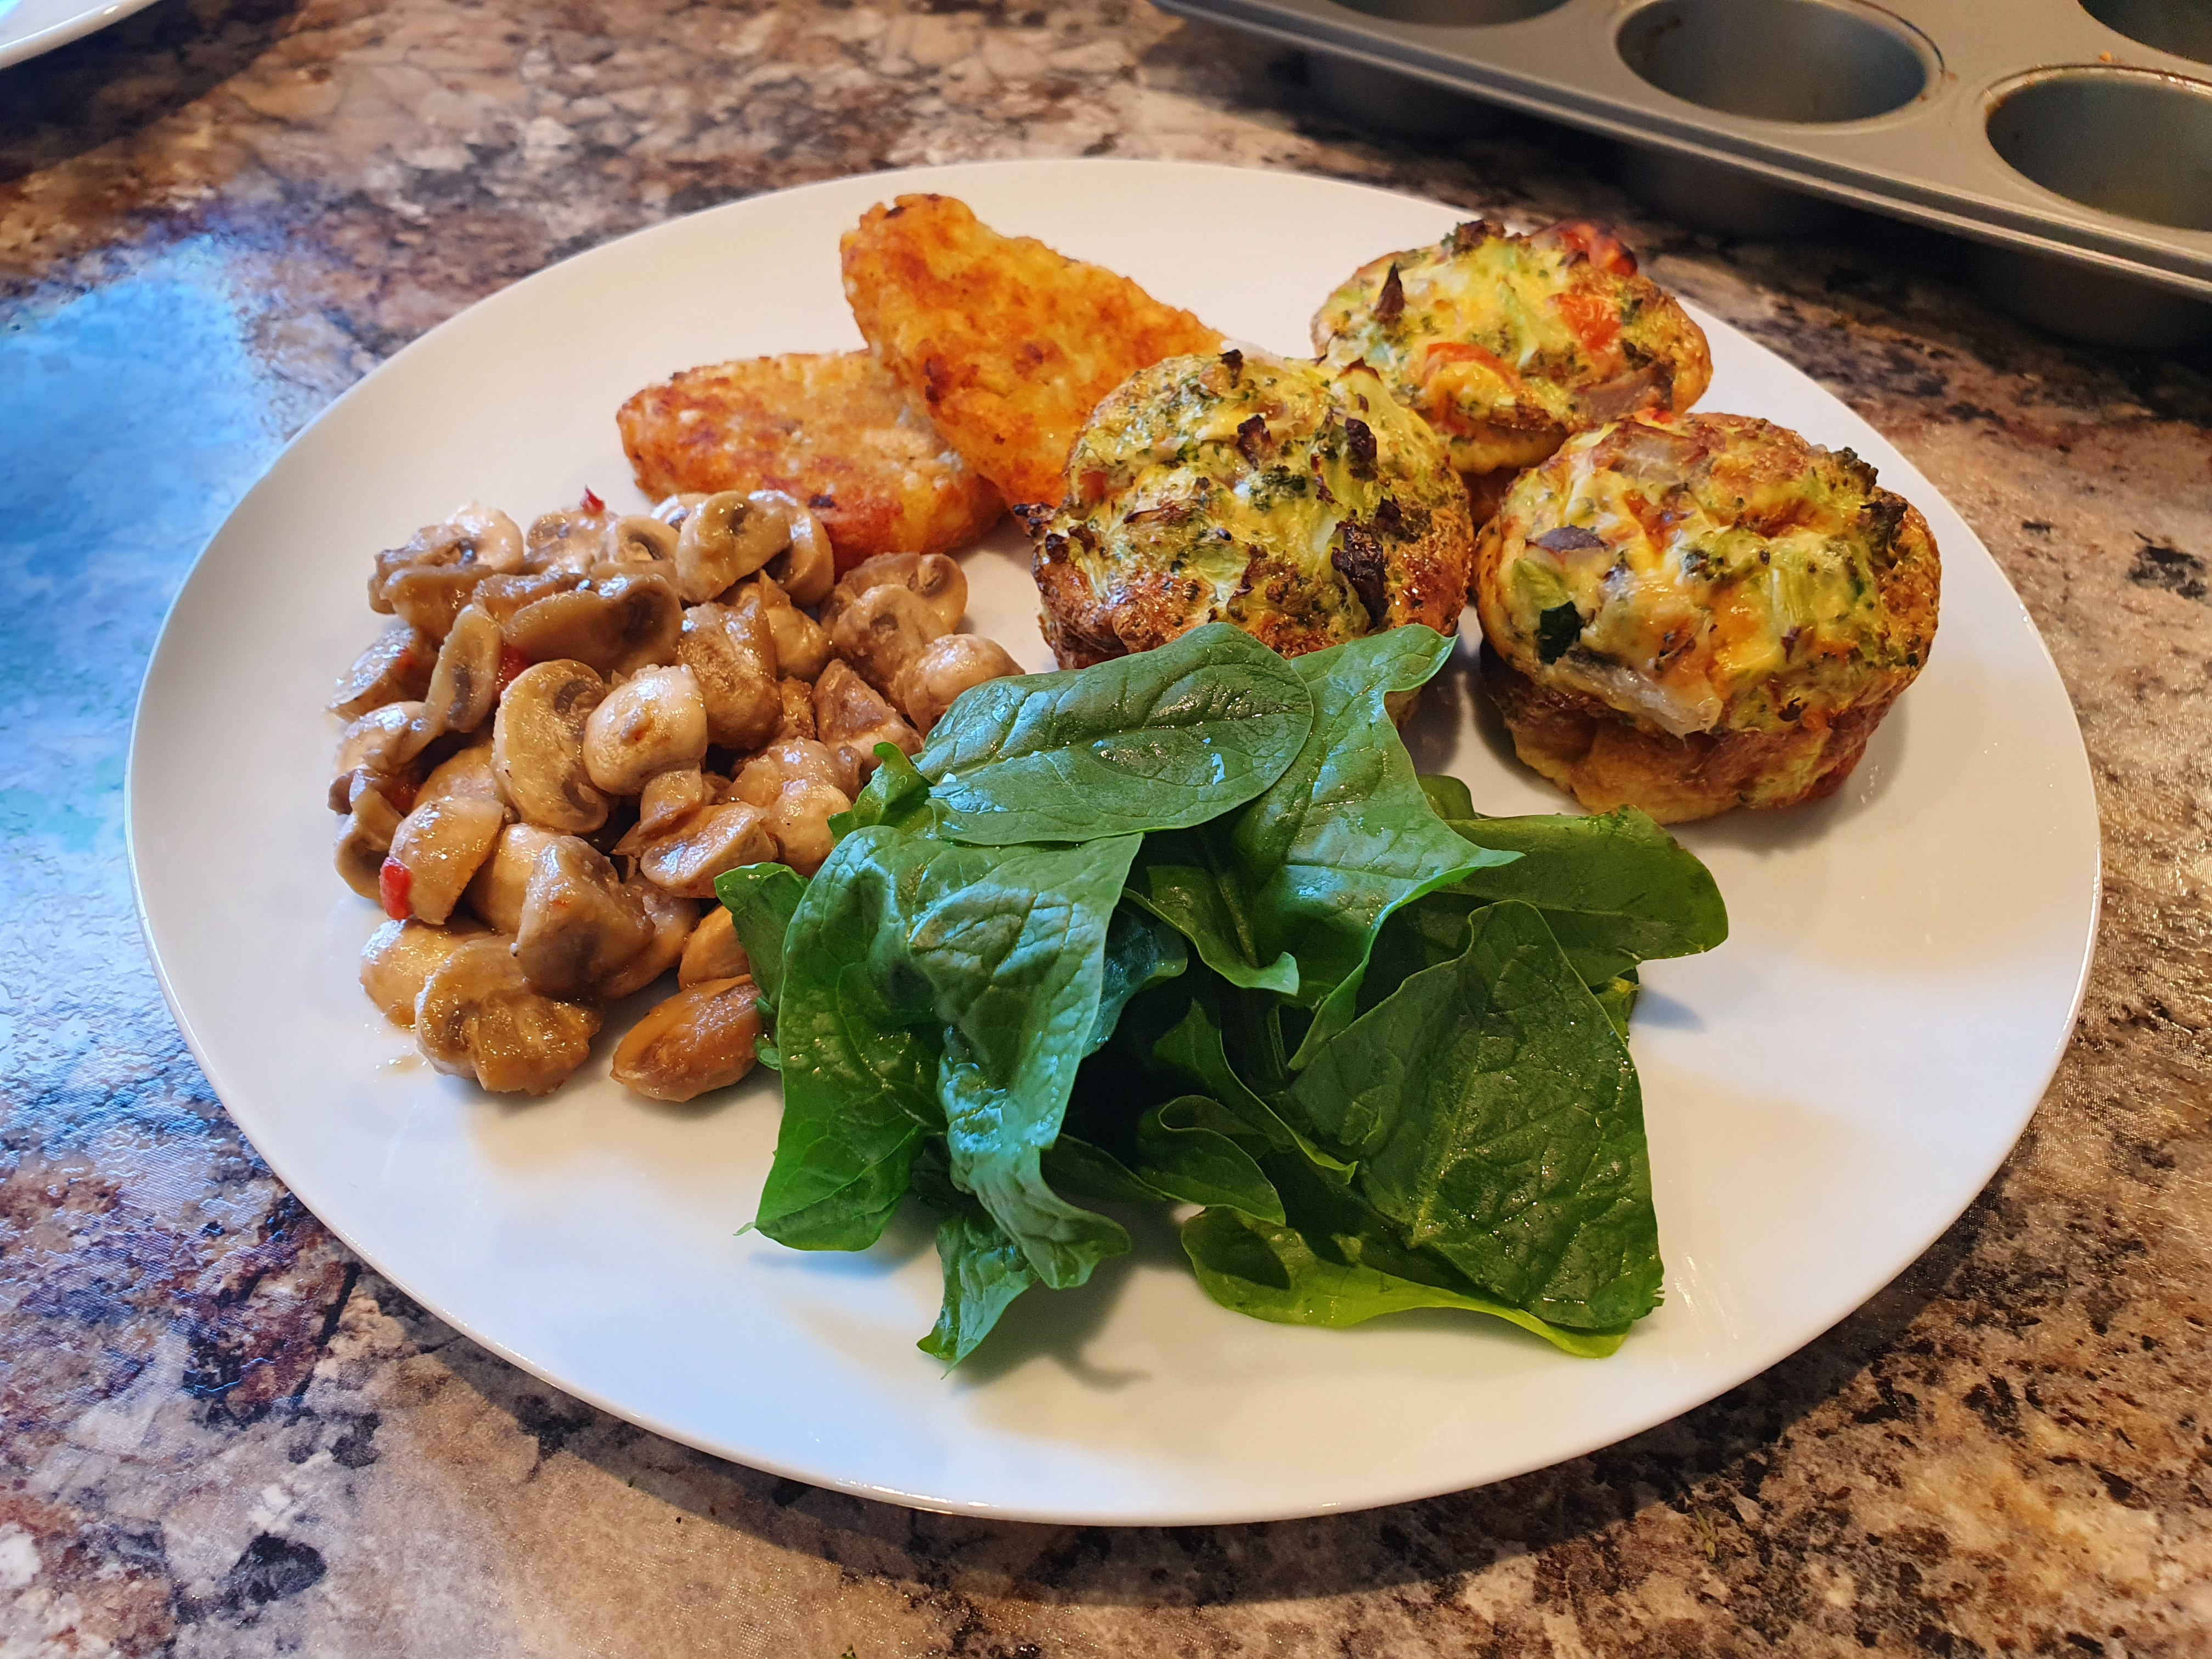 Egg and broccoli muffins baked served with salad